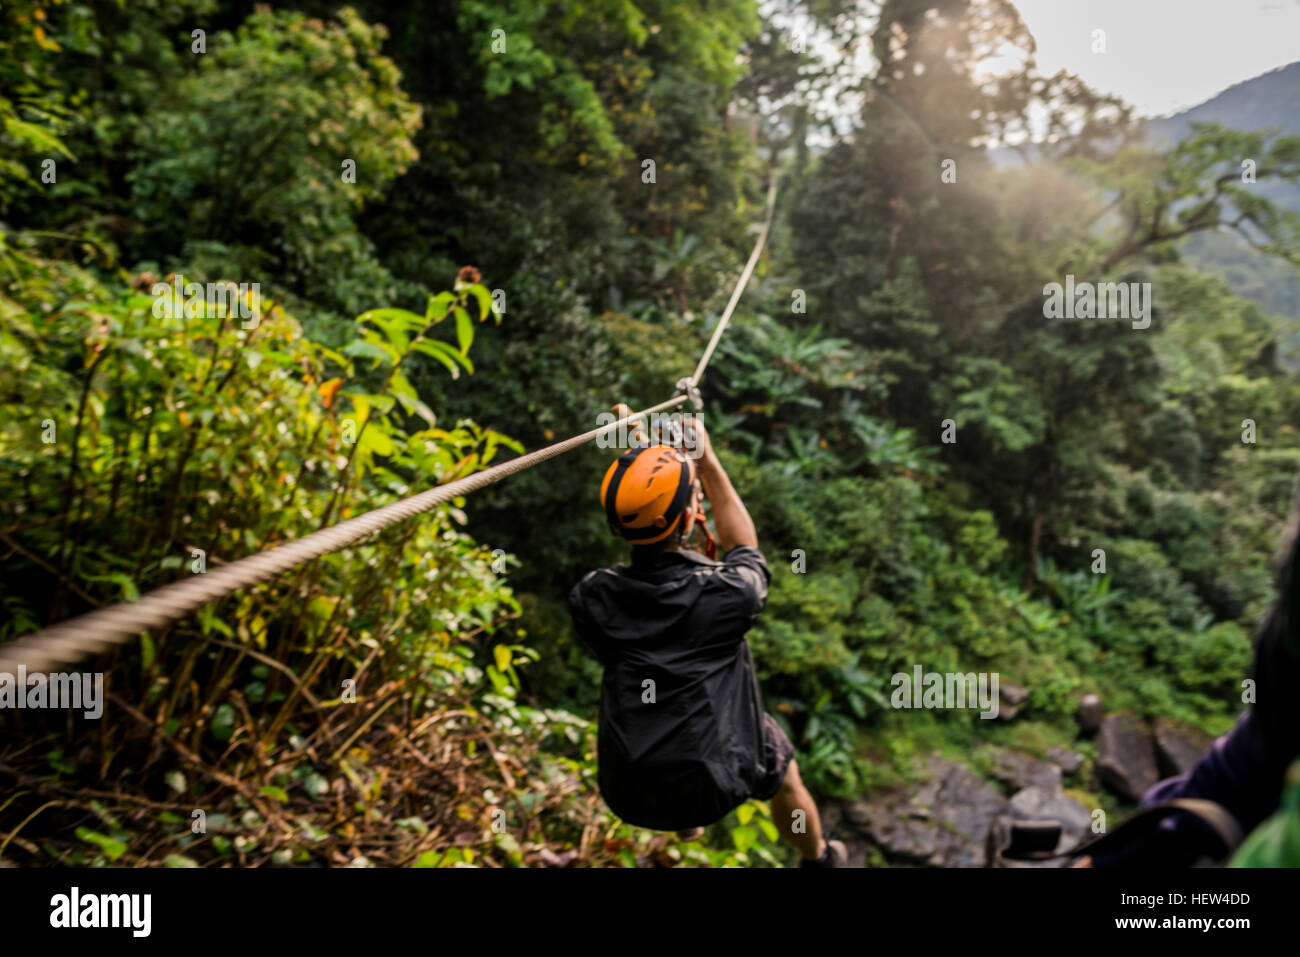 4 man zip wire wales 2006 honda civic hybrid wiring diagram on stock photos and images alamy